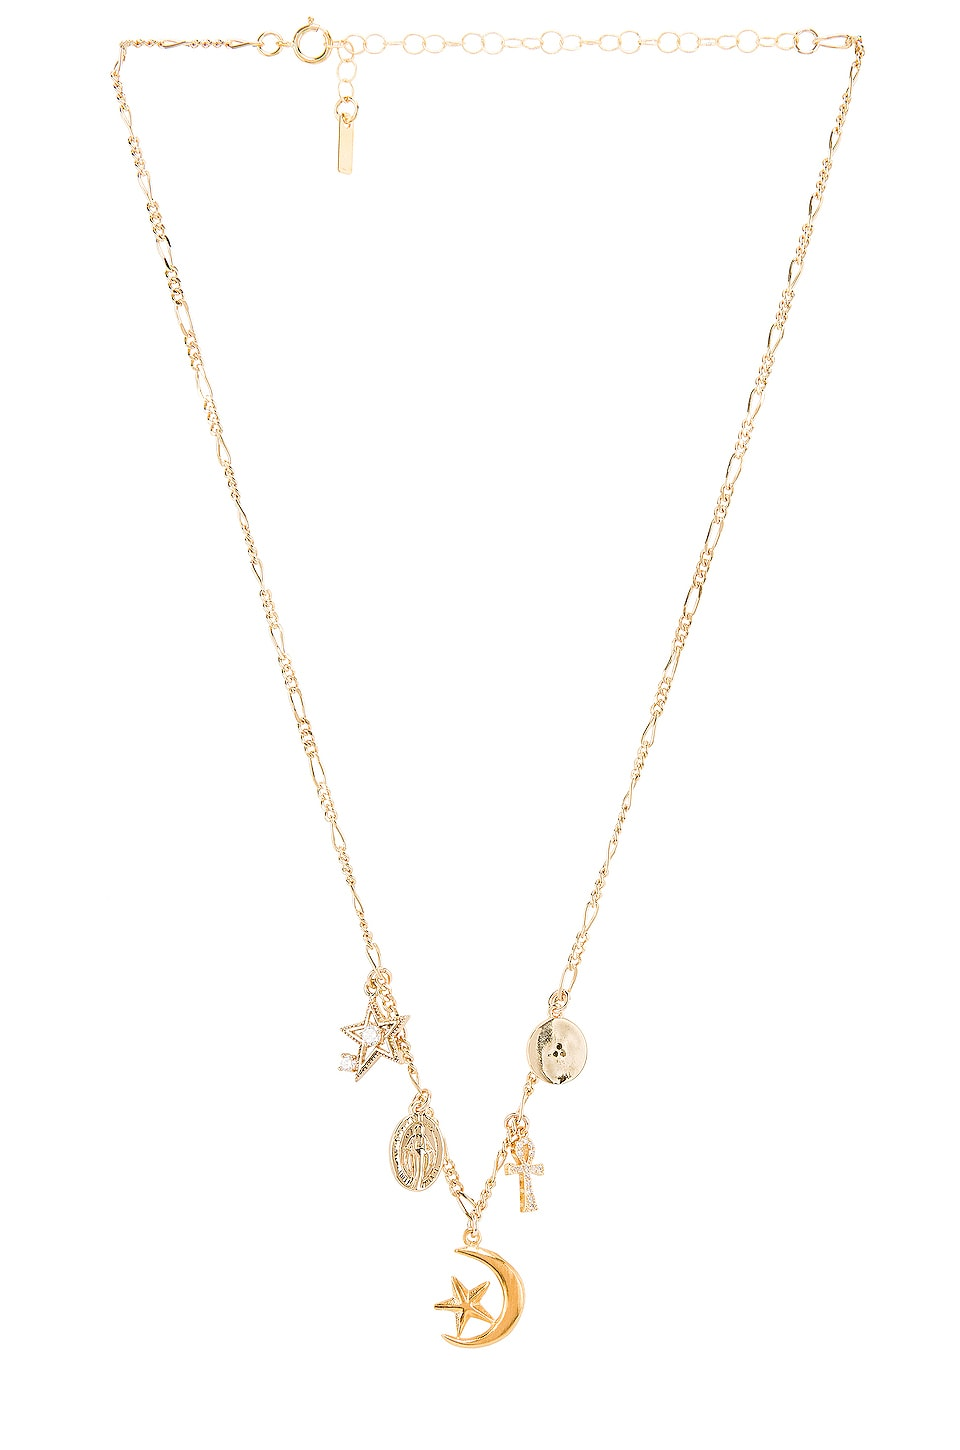 Natalie B Jewelry Celestial Charm Necklace in Gold